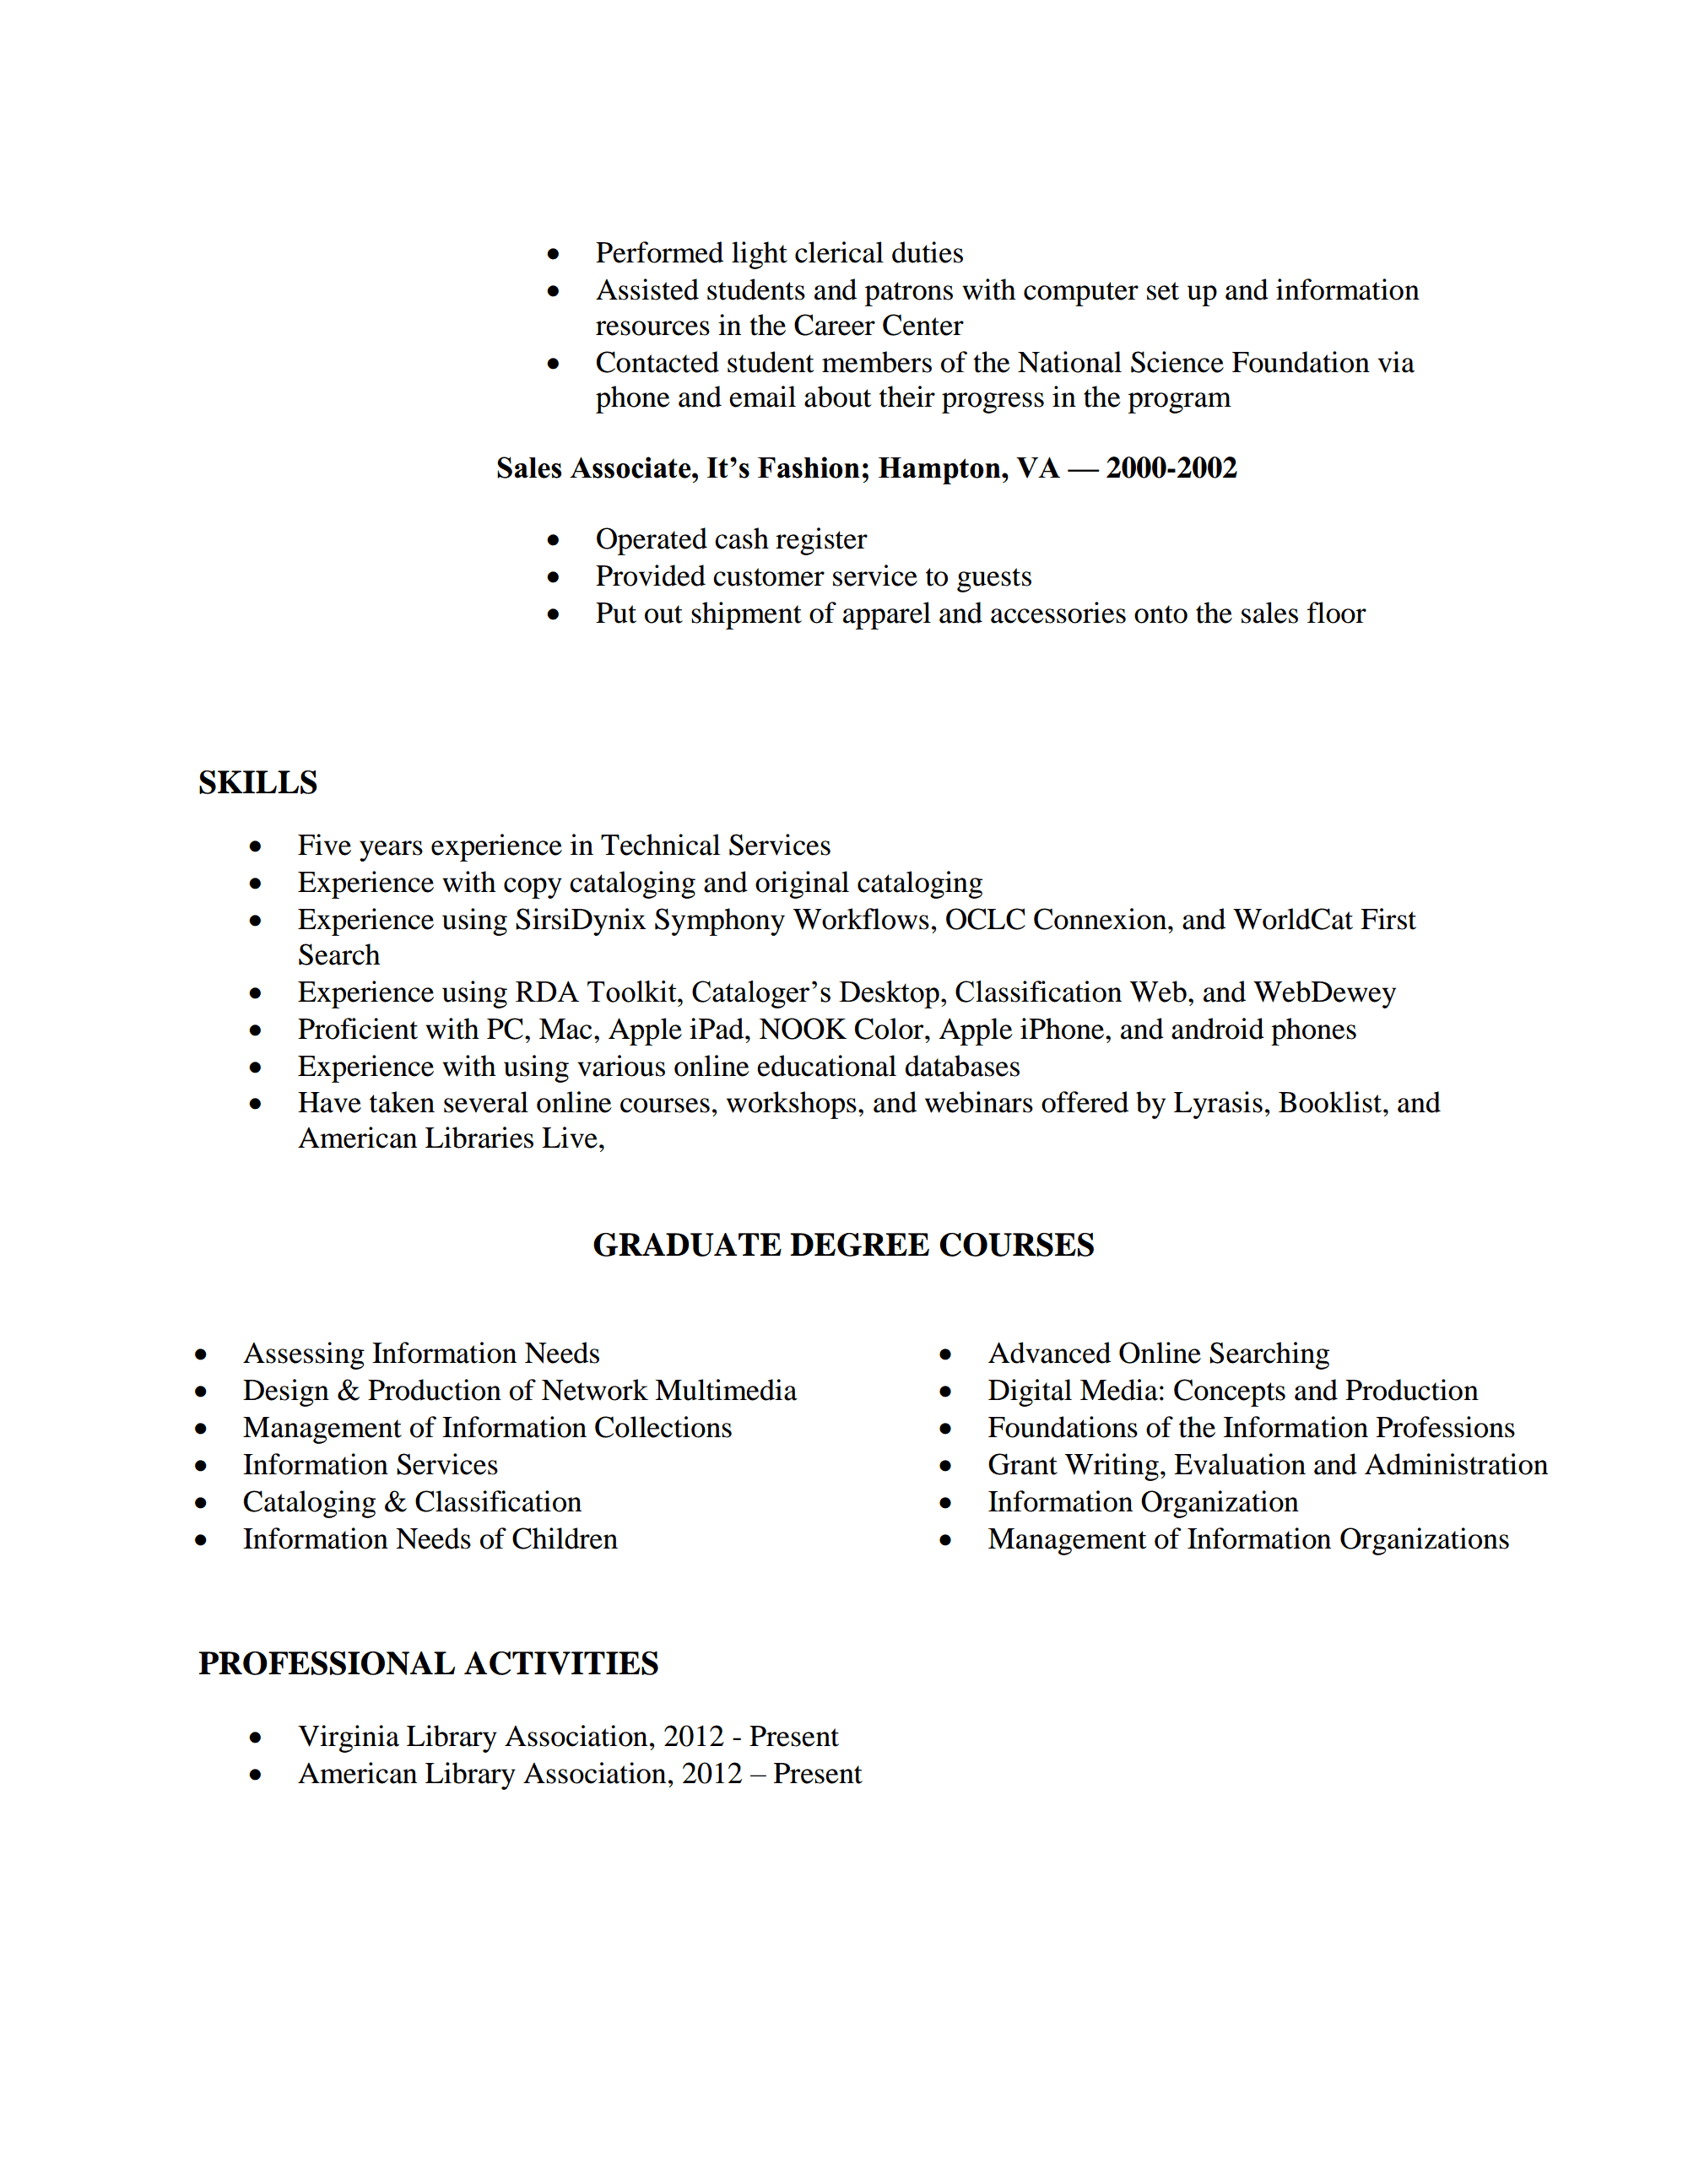 100+ [ Apple Job Resume ] | Free Resume Templates For Pages Resume ...